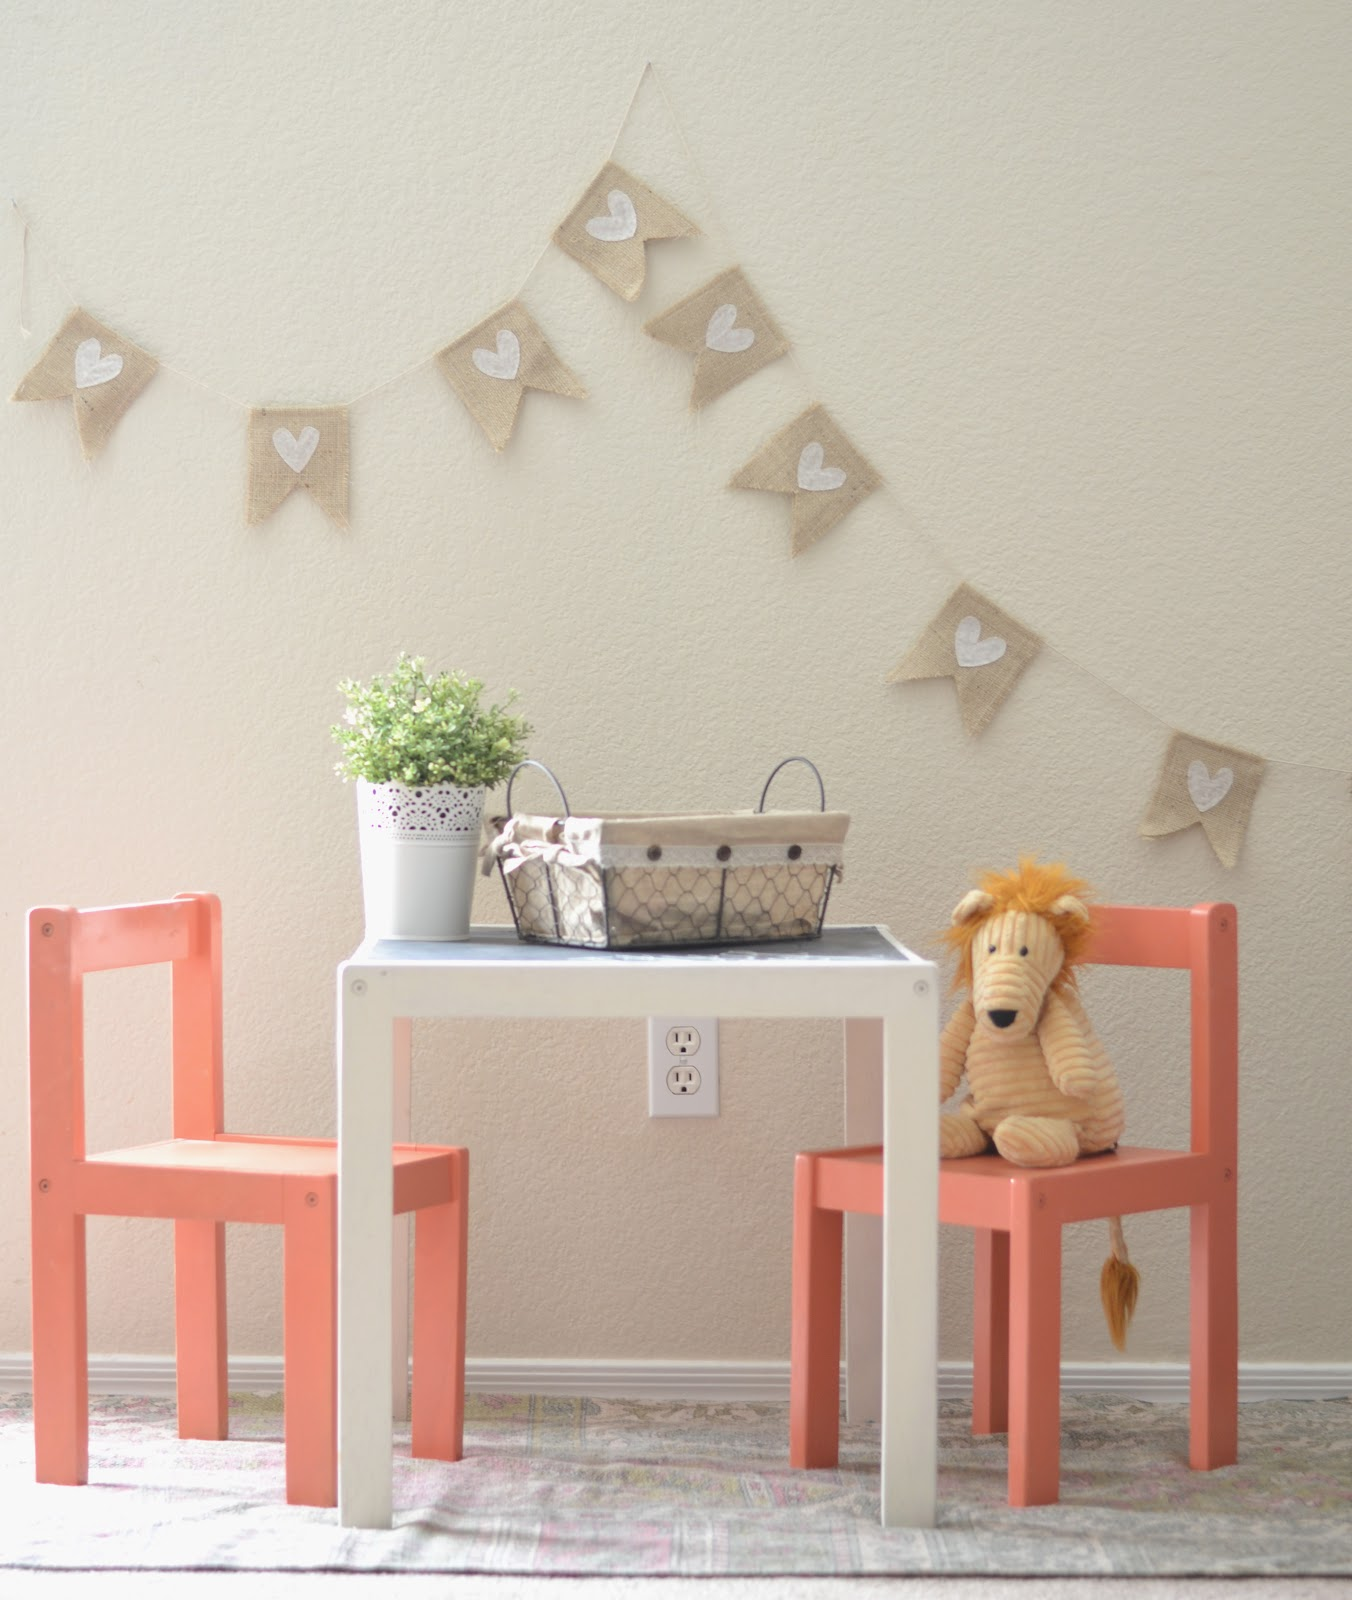 spray painted the table heirloom white and the chairs coral isle by